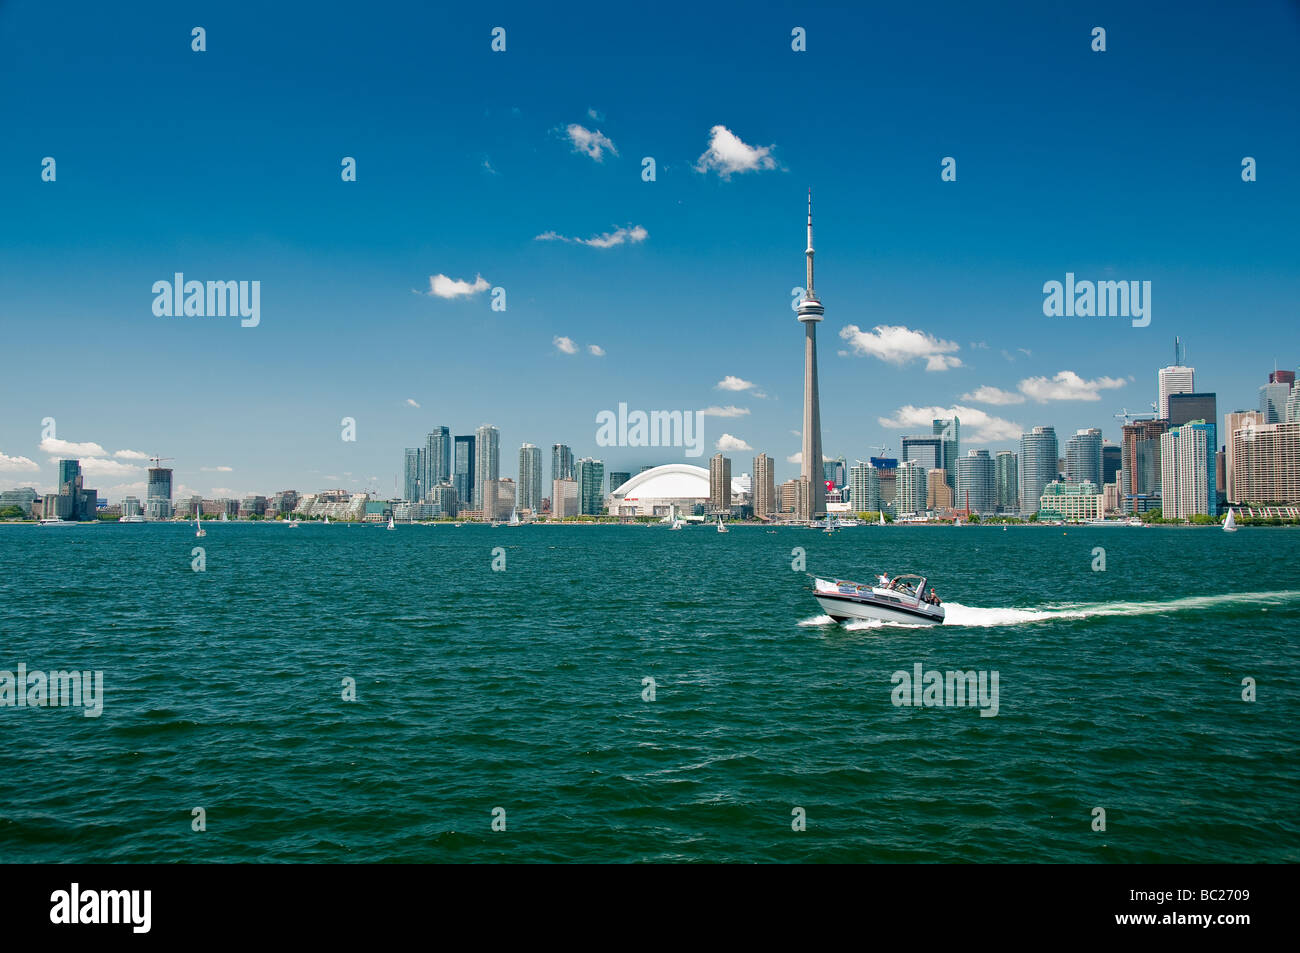 Toronto  Skyline with jet boat in the foreground, Toronto,Ontario,Canada - Stock Image